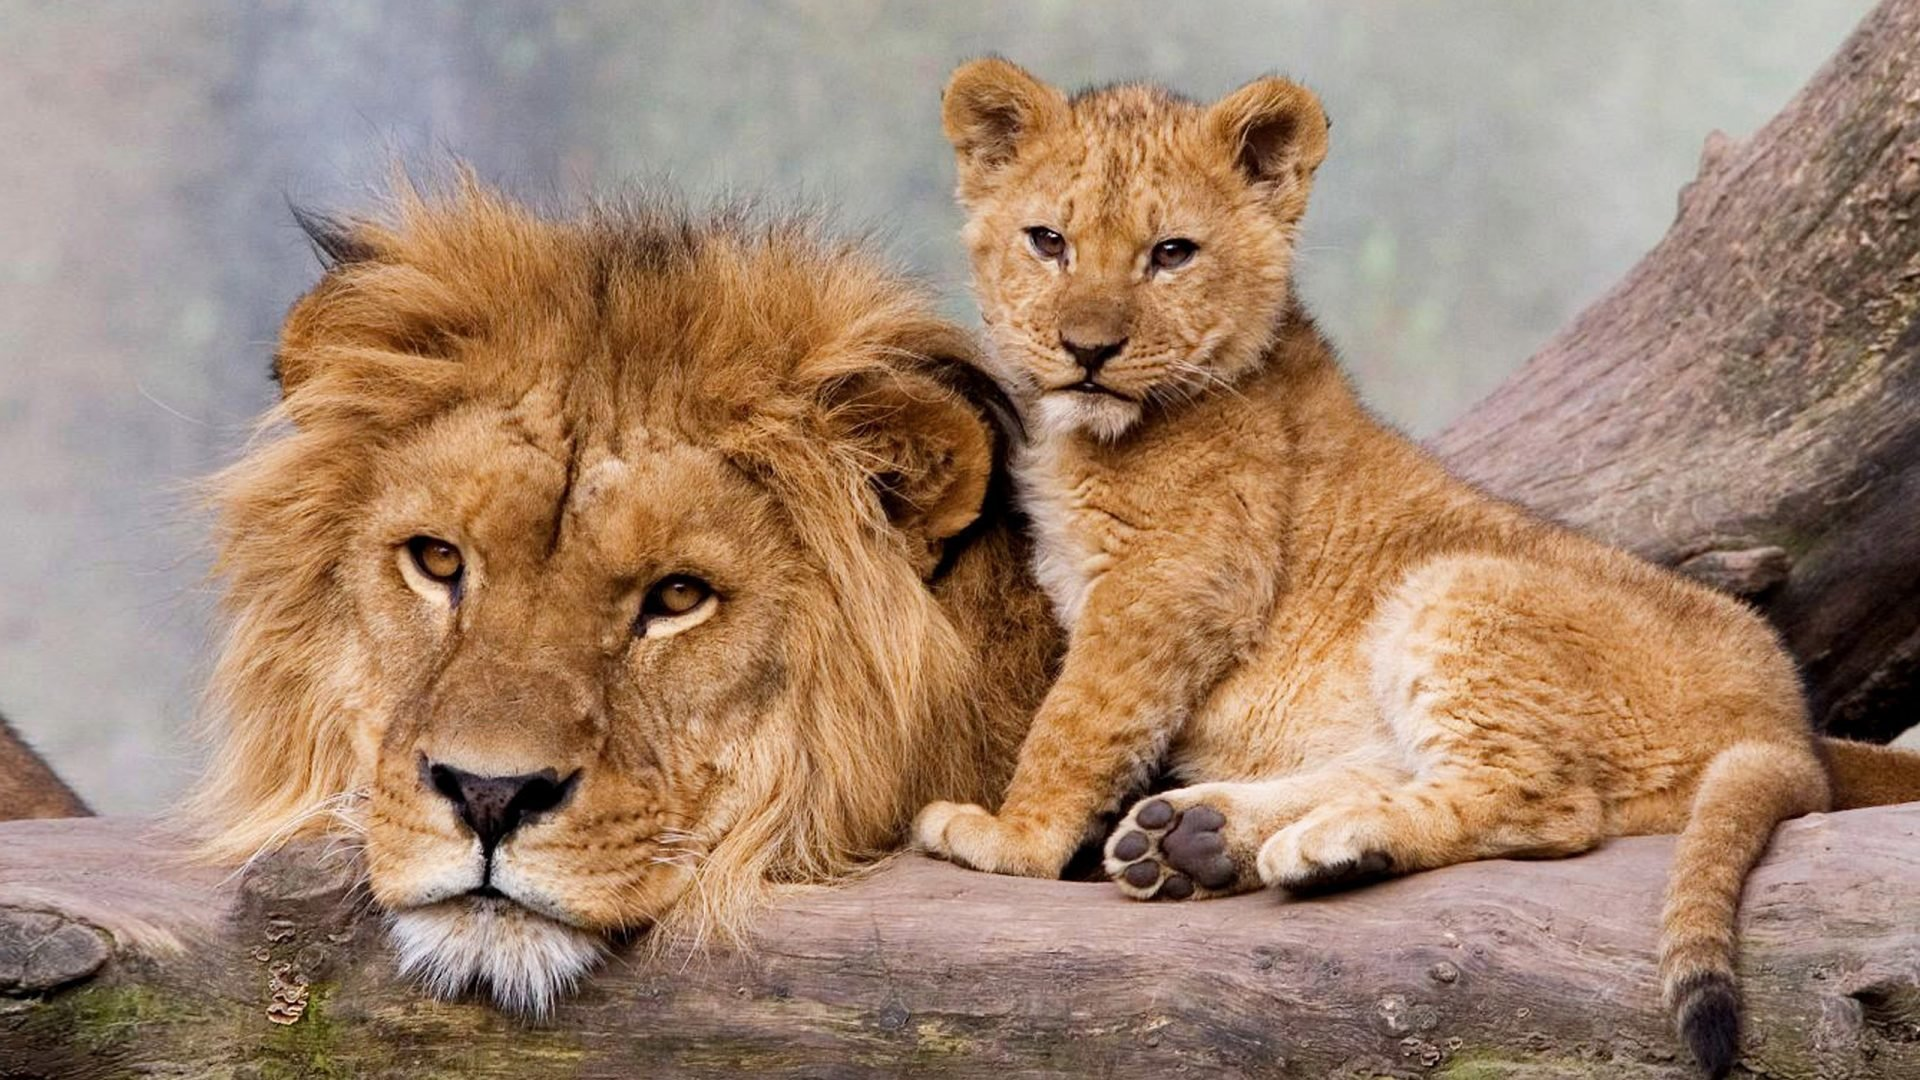 Download full hd Baby Animal (cub) PC background ID:255377 for free